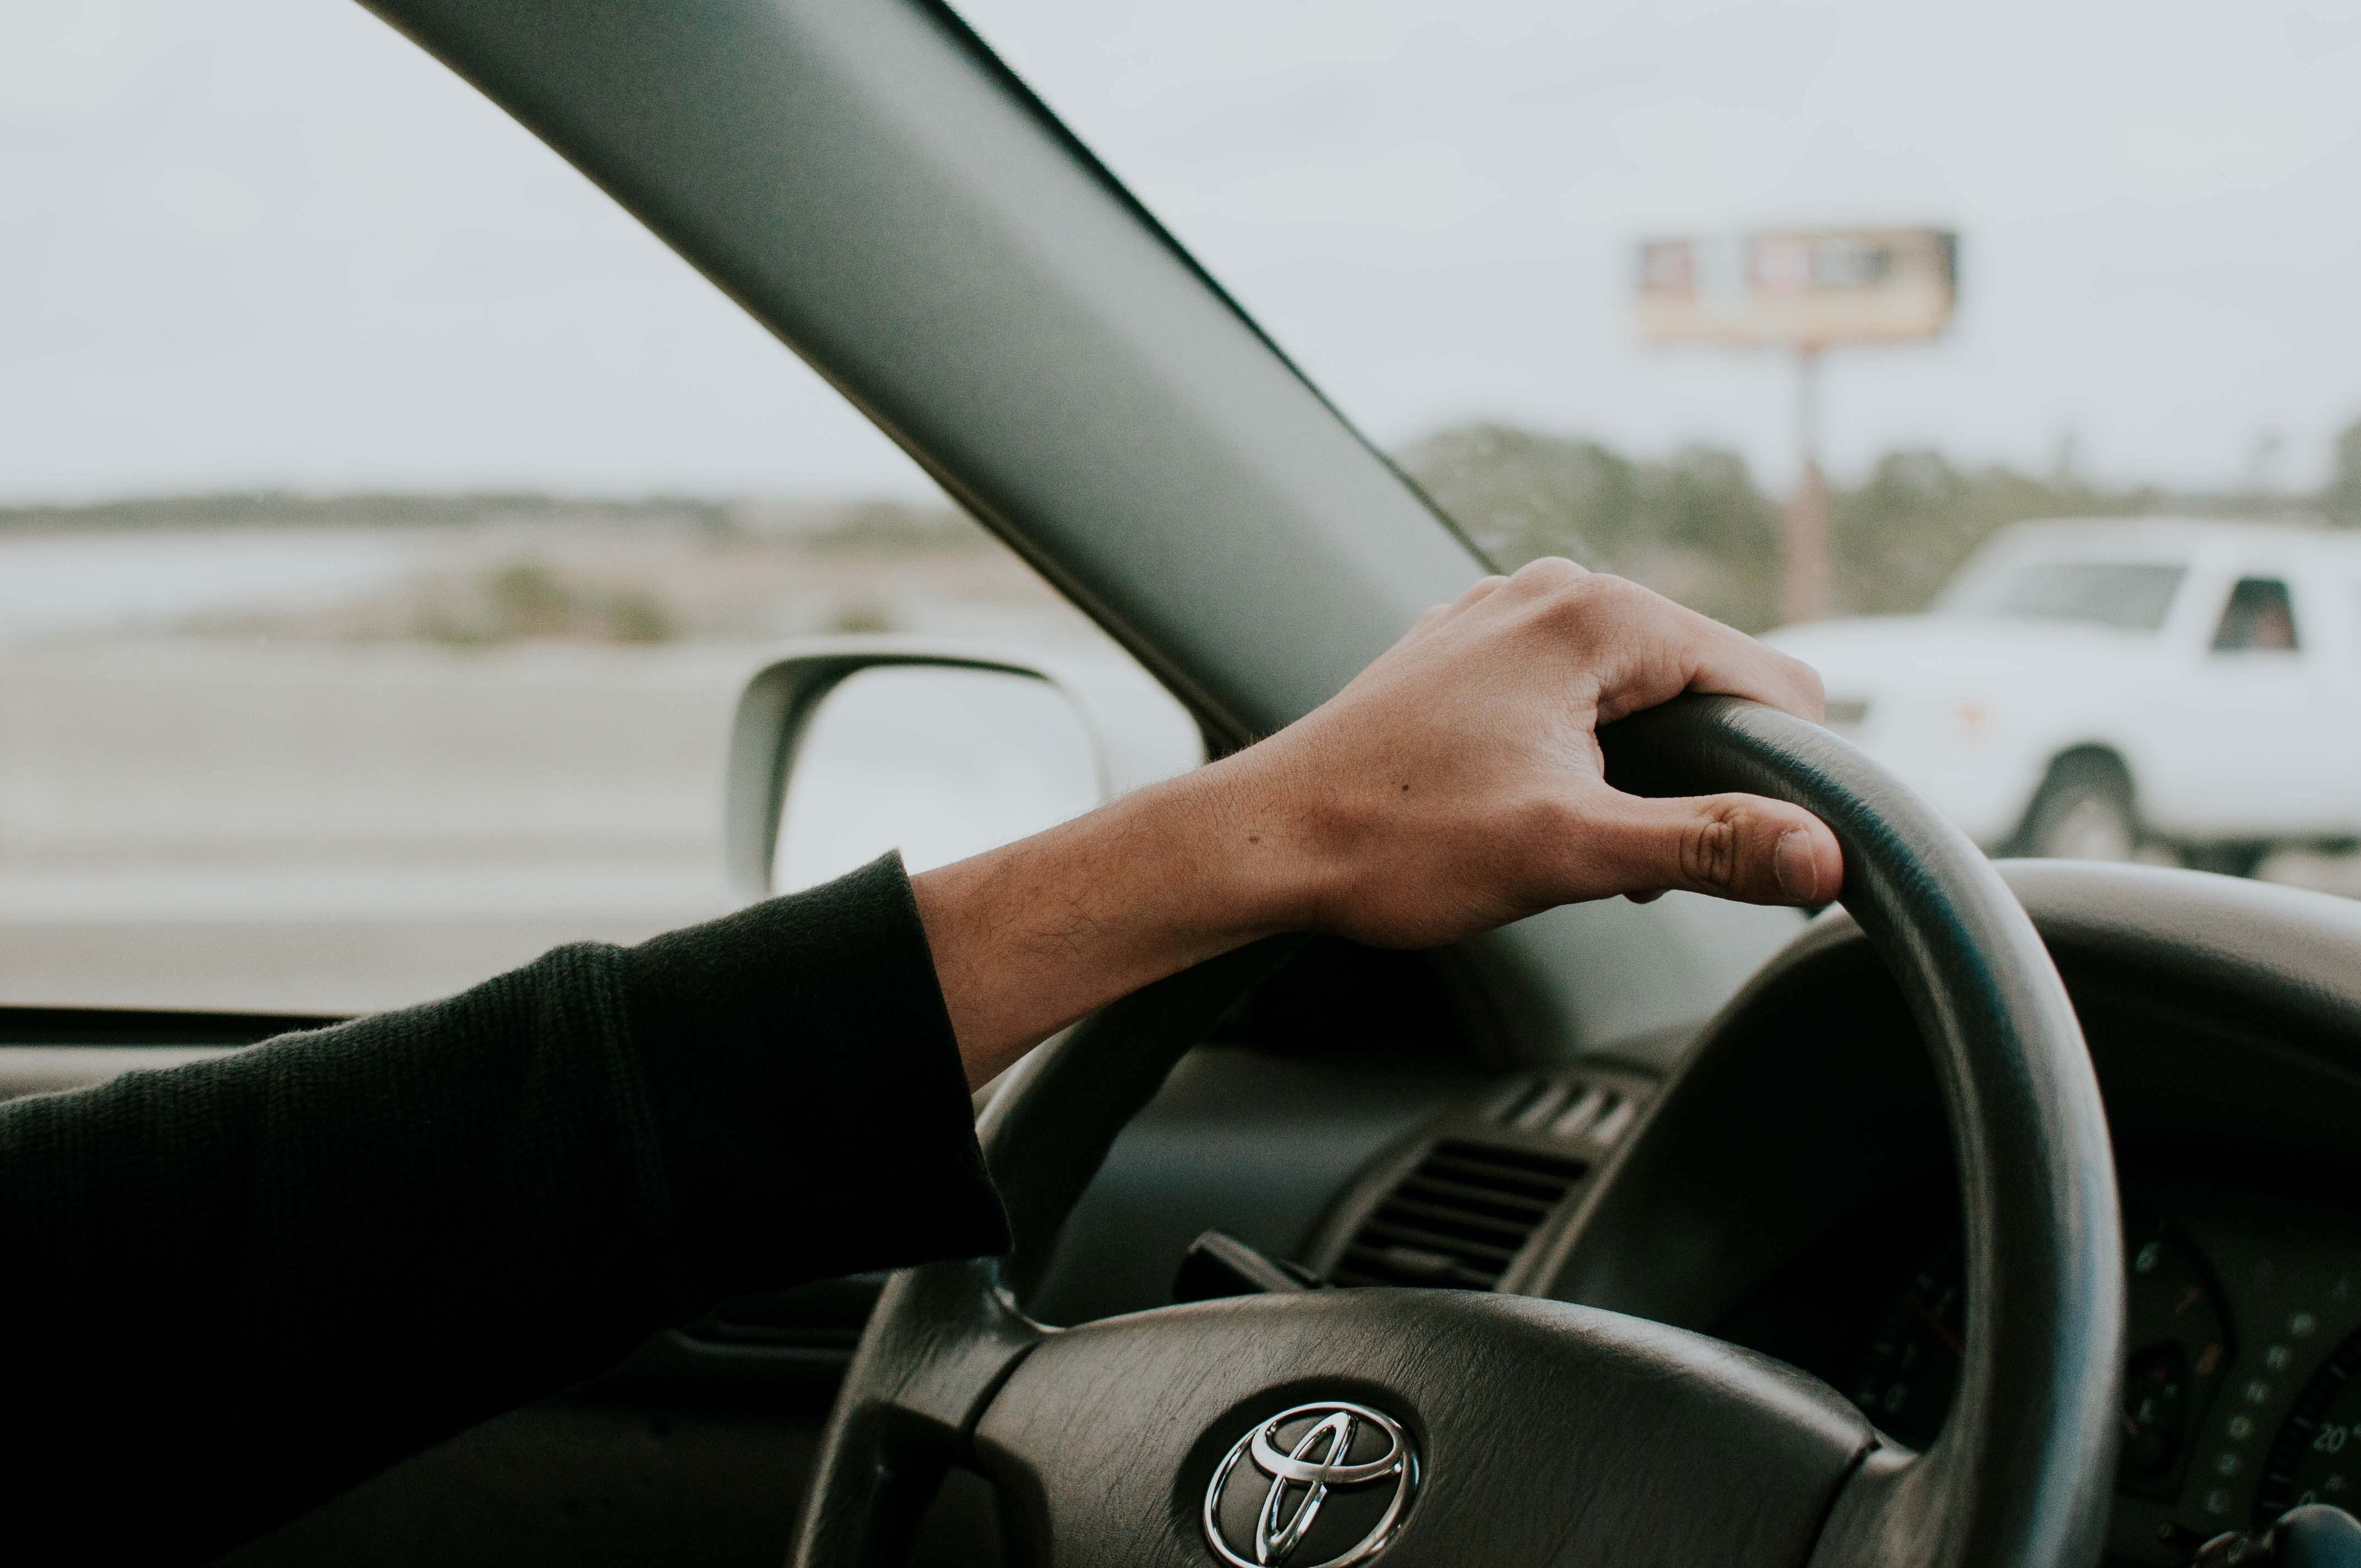 person driving Toyota car